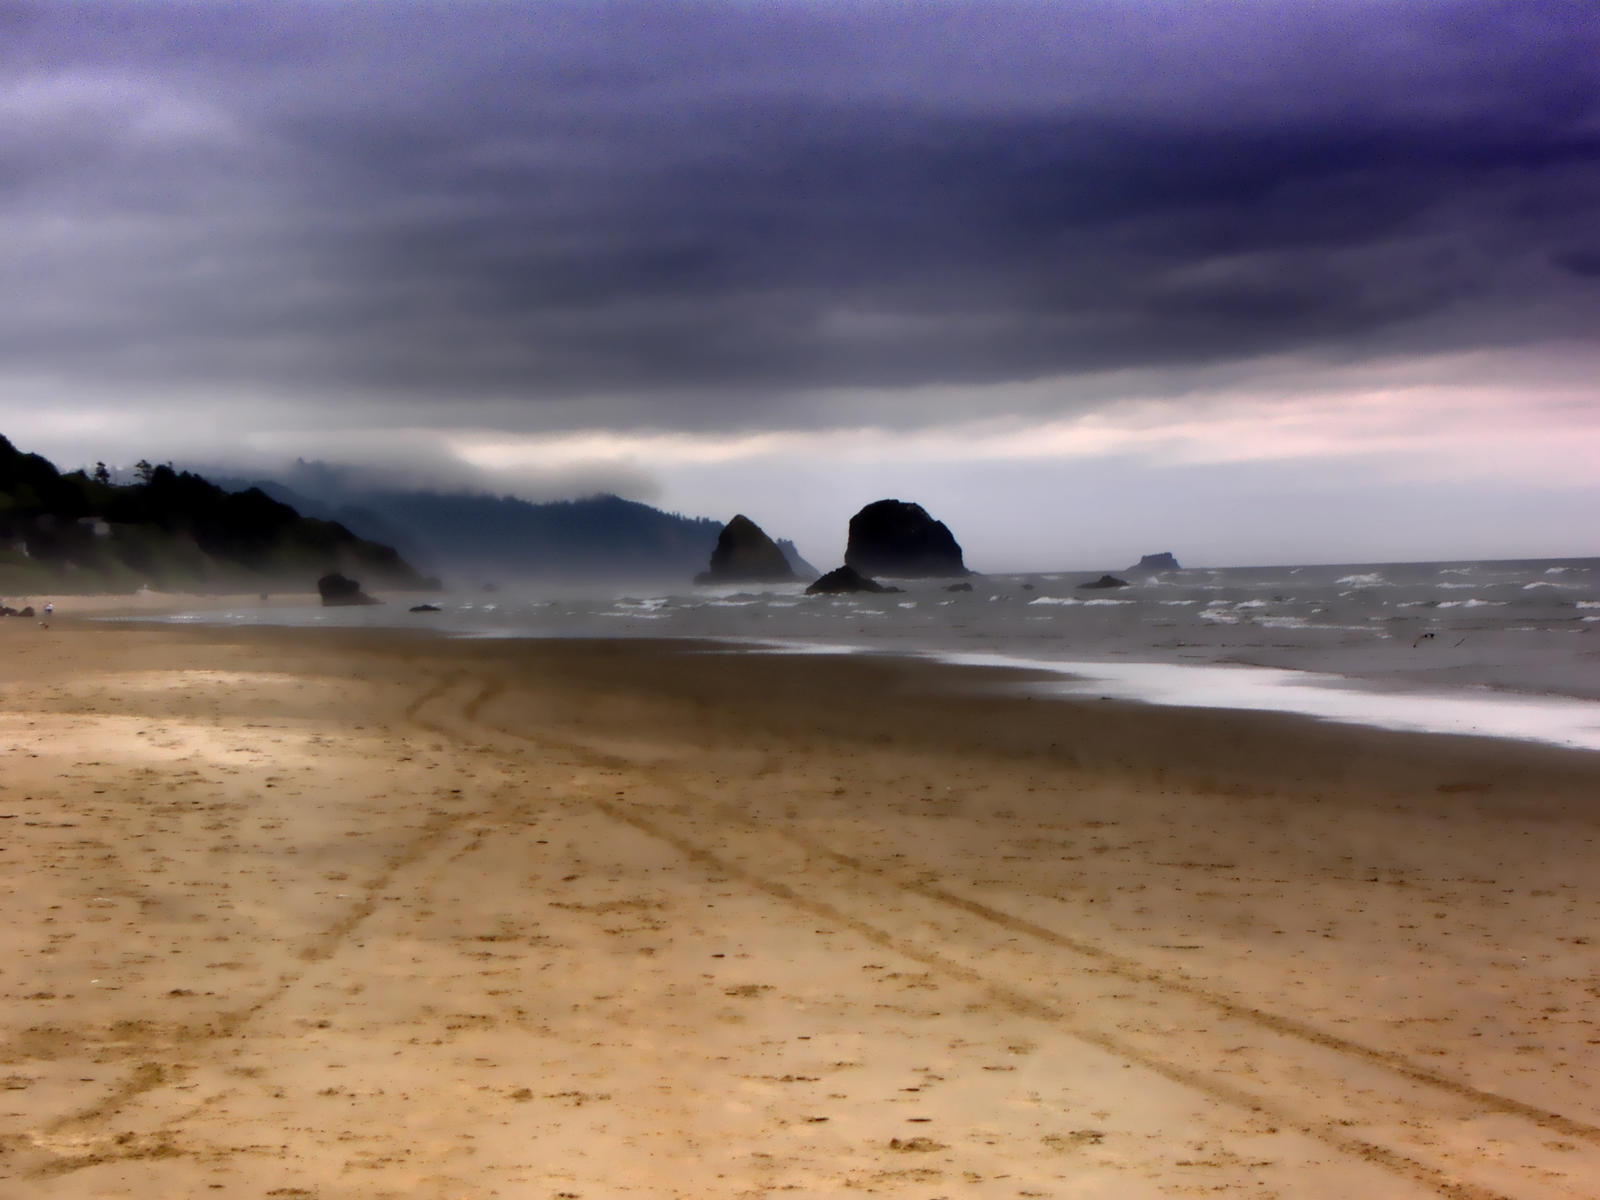 Stormy Beach Wallpaper: Stormy Beach By Sidneys1 On DeviantArt